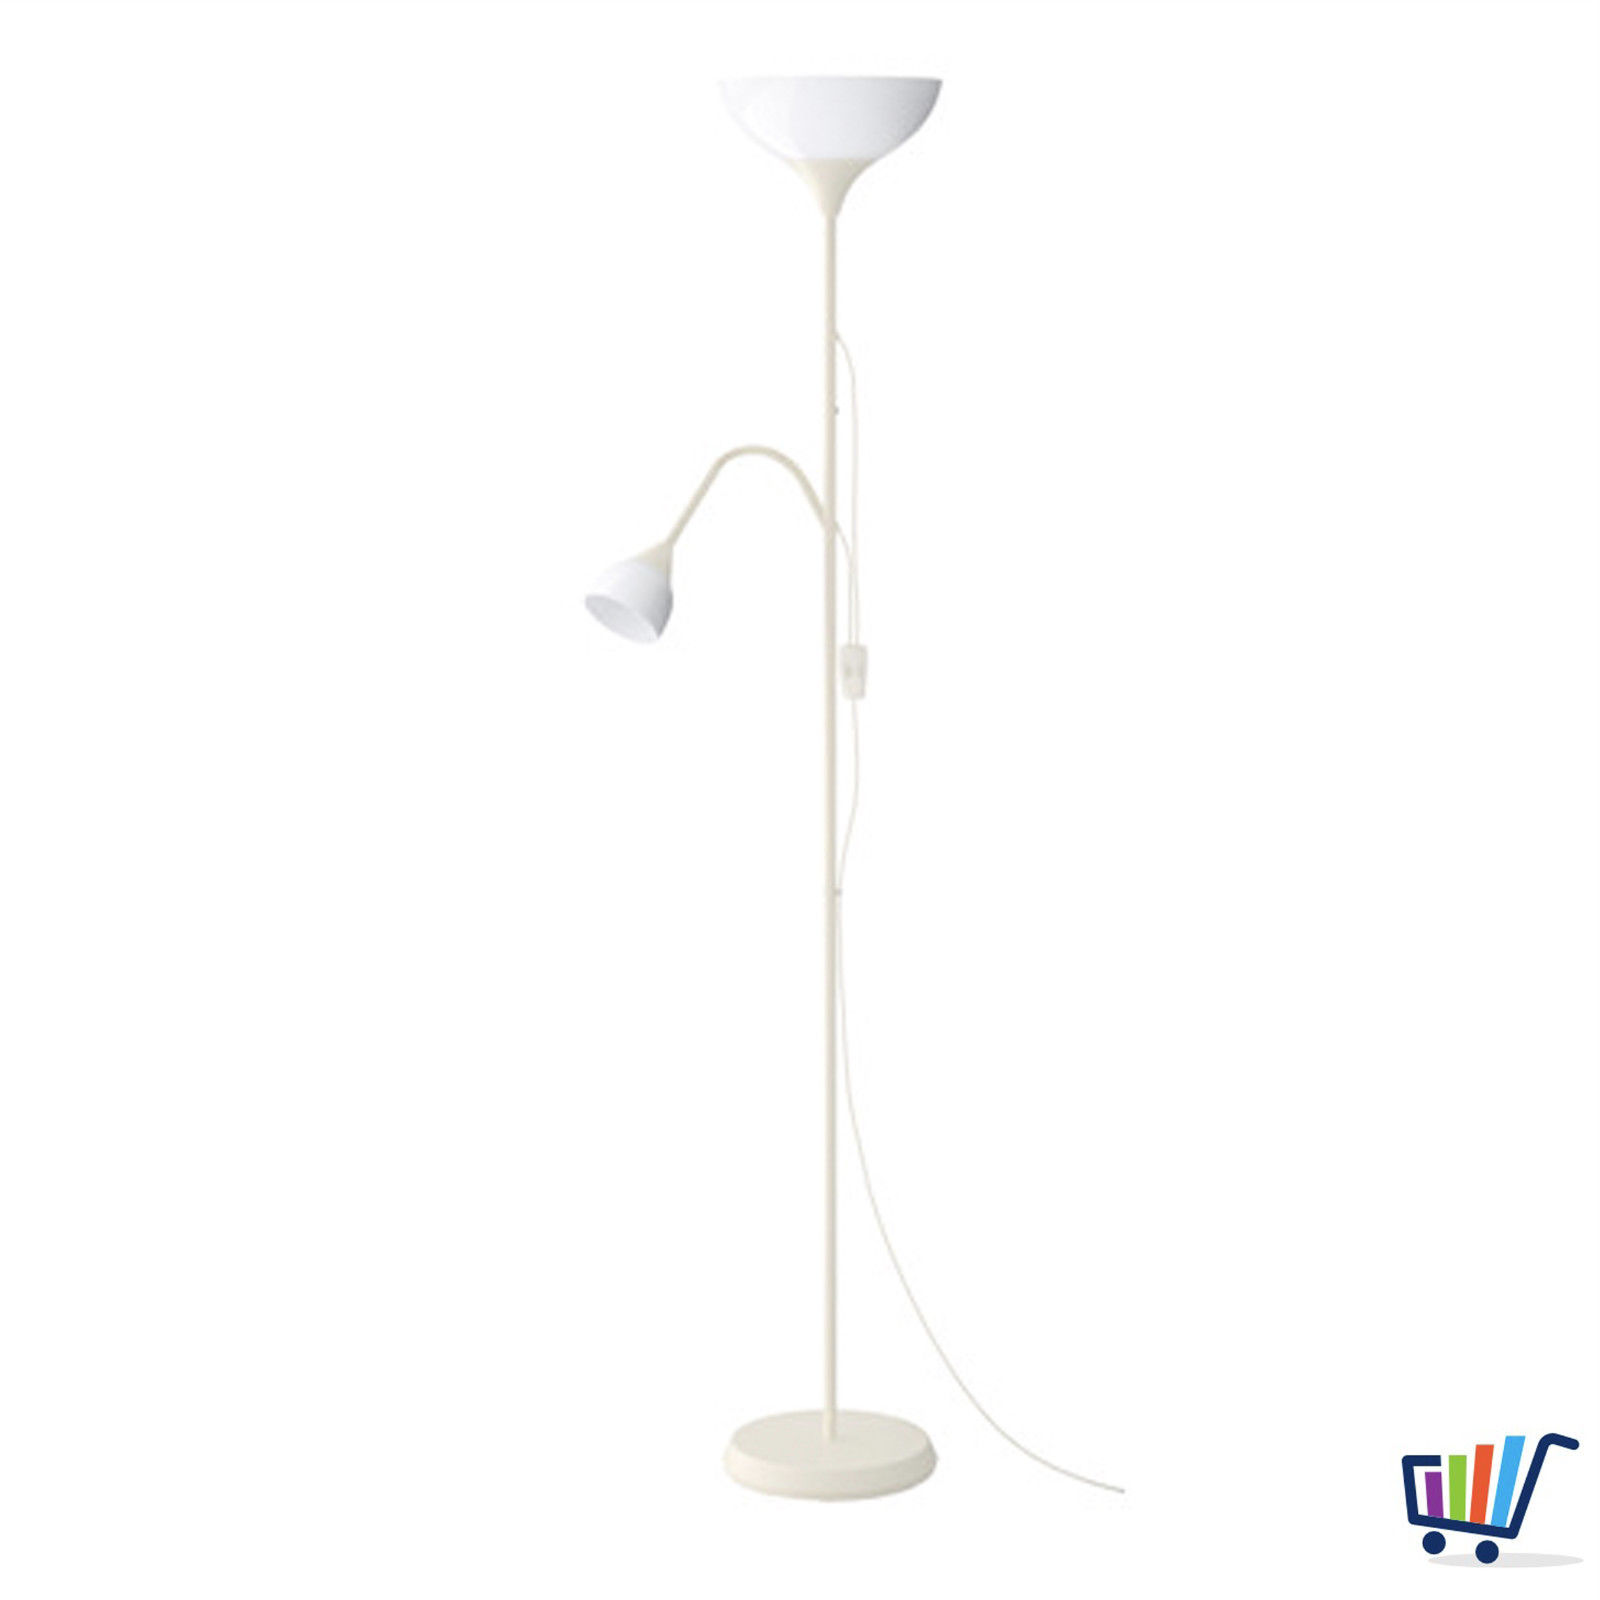 Deckenfluter Mit Leselampe Ikea Strahler Deckenfluter Deckenstrahler Stehleuchte Weiß Stehlampe Leselampe